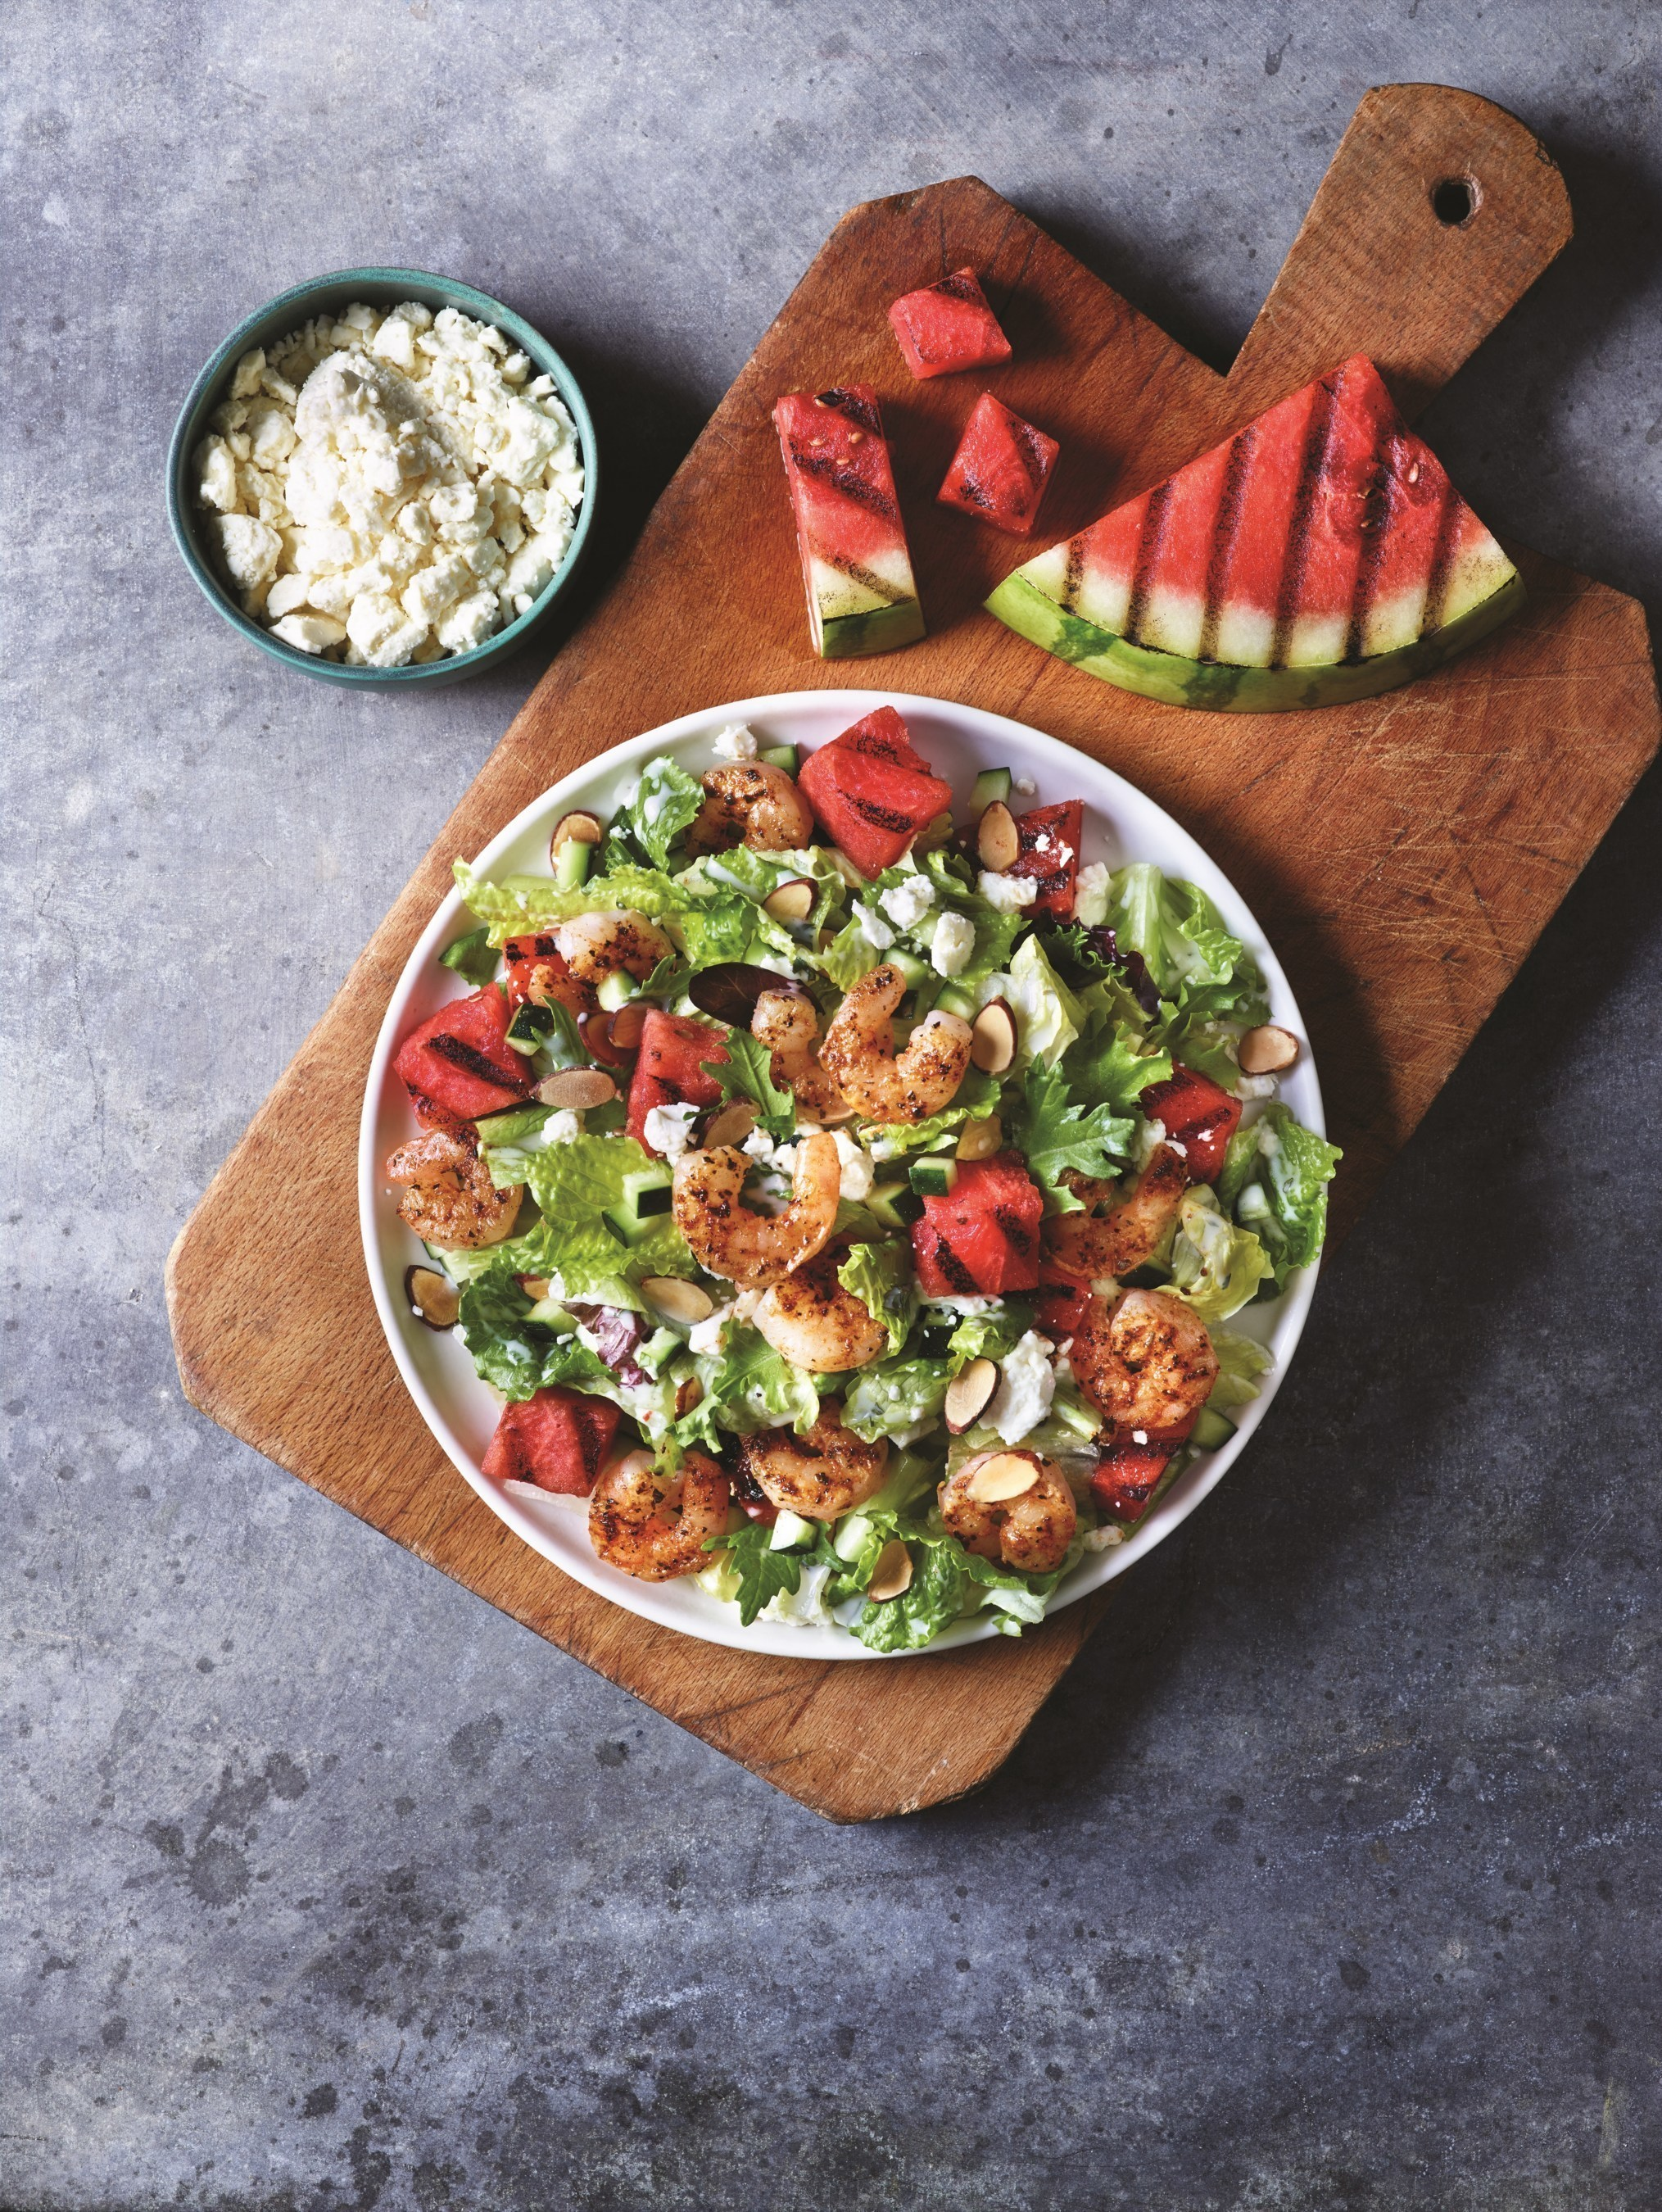 Applebee's NEW Grilled Watermelon and Spicy Shrimp Salad is made with mixed greens, cucumbers, feta, almonds and house-made creamy mint-Greek yogurt dressing.